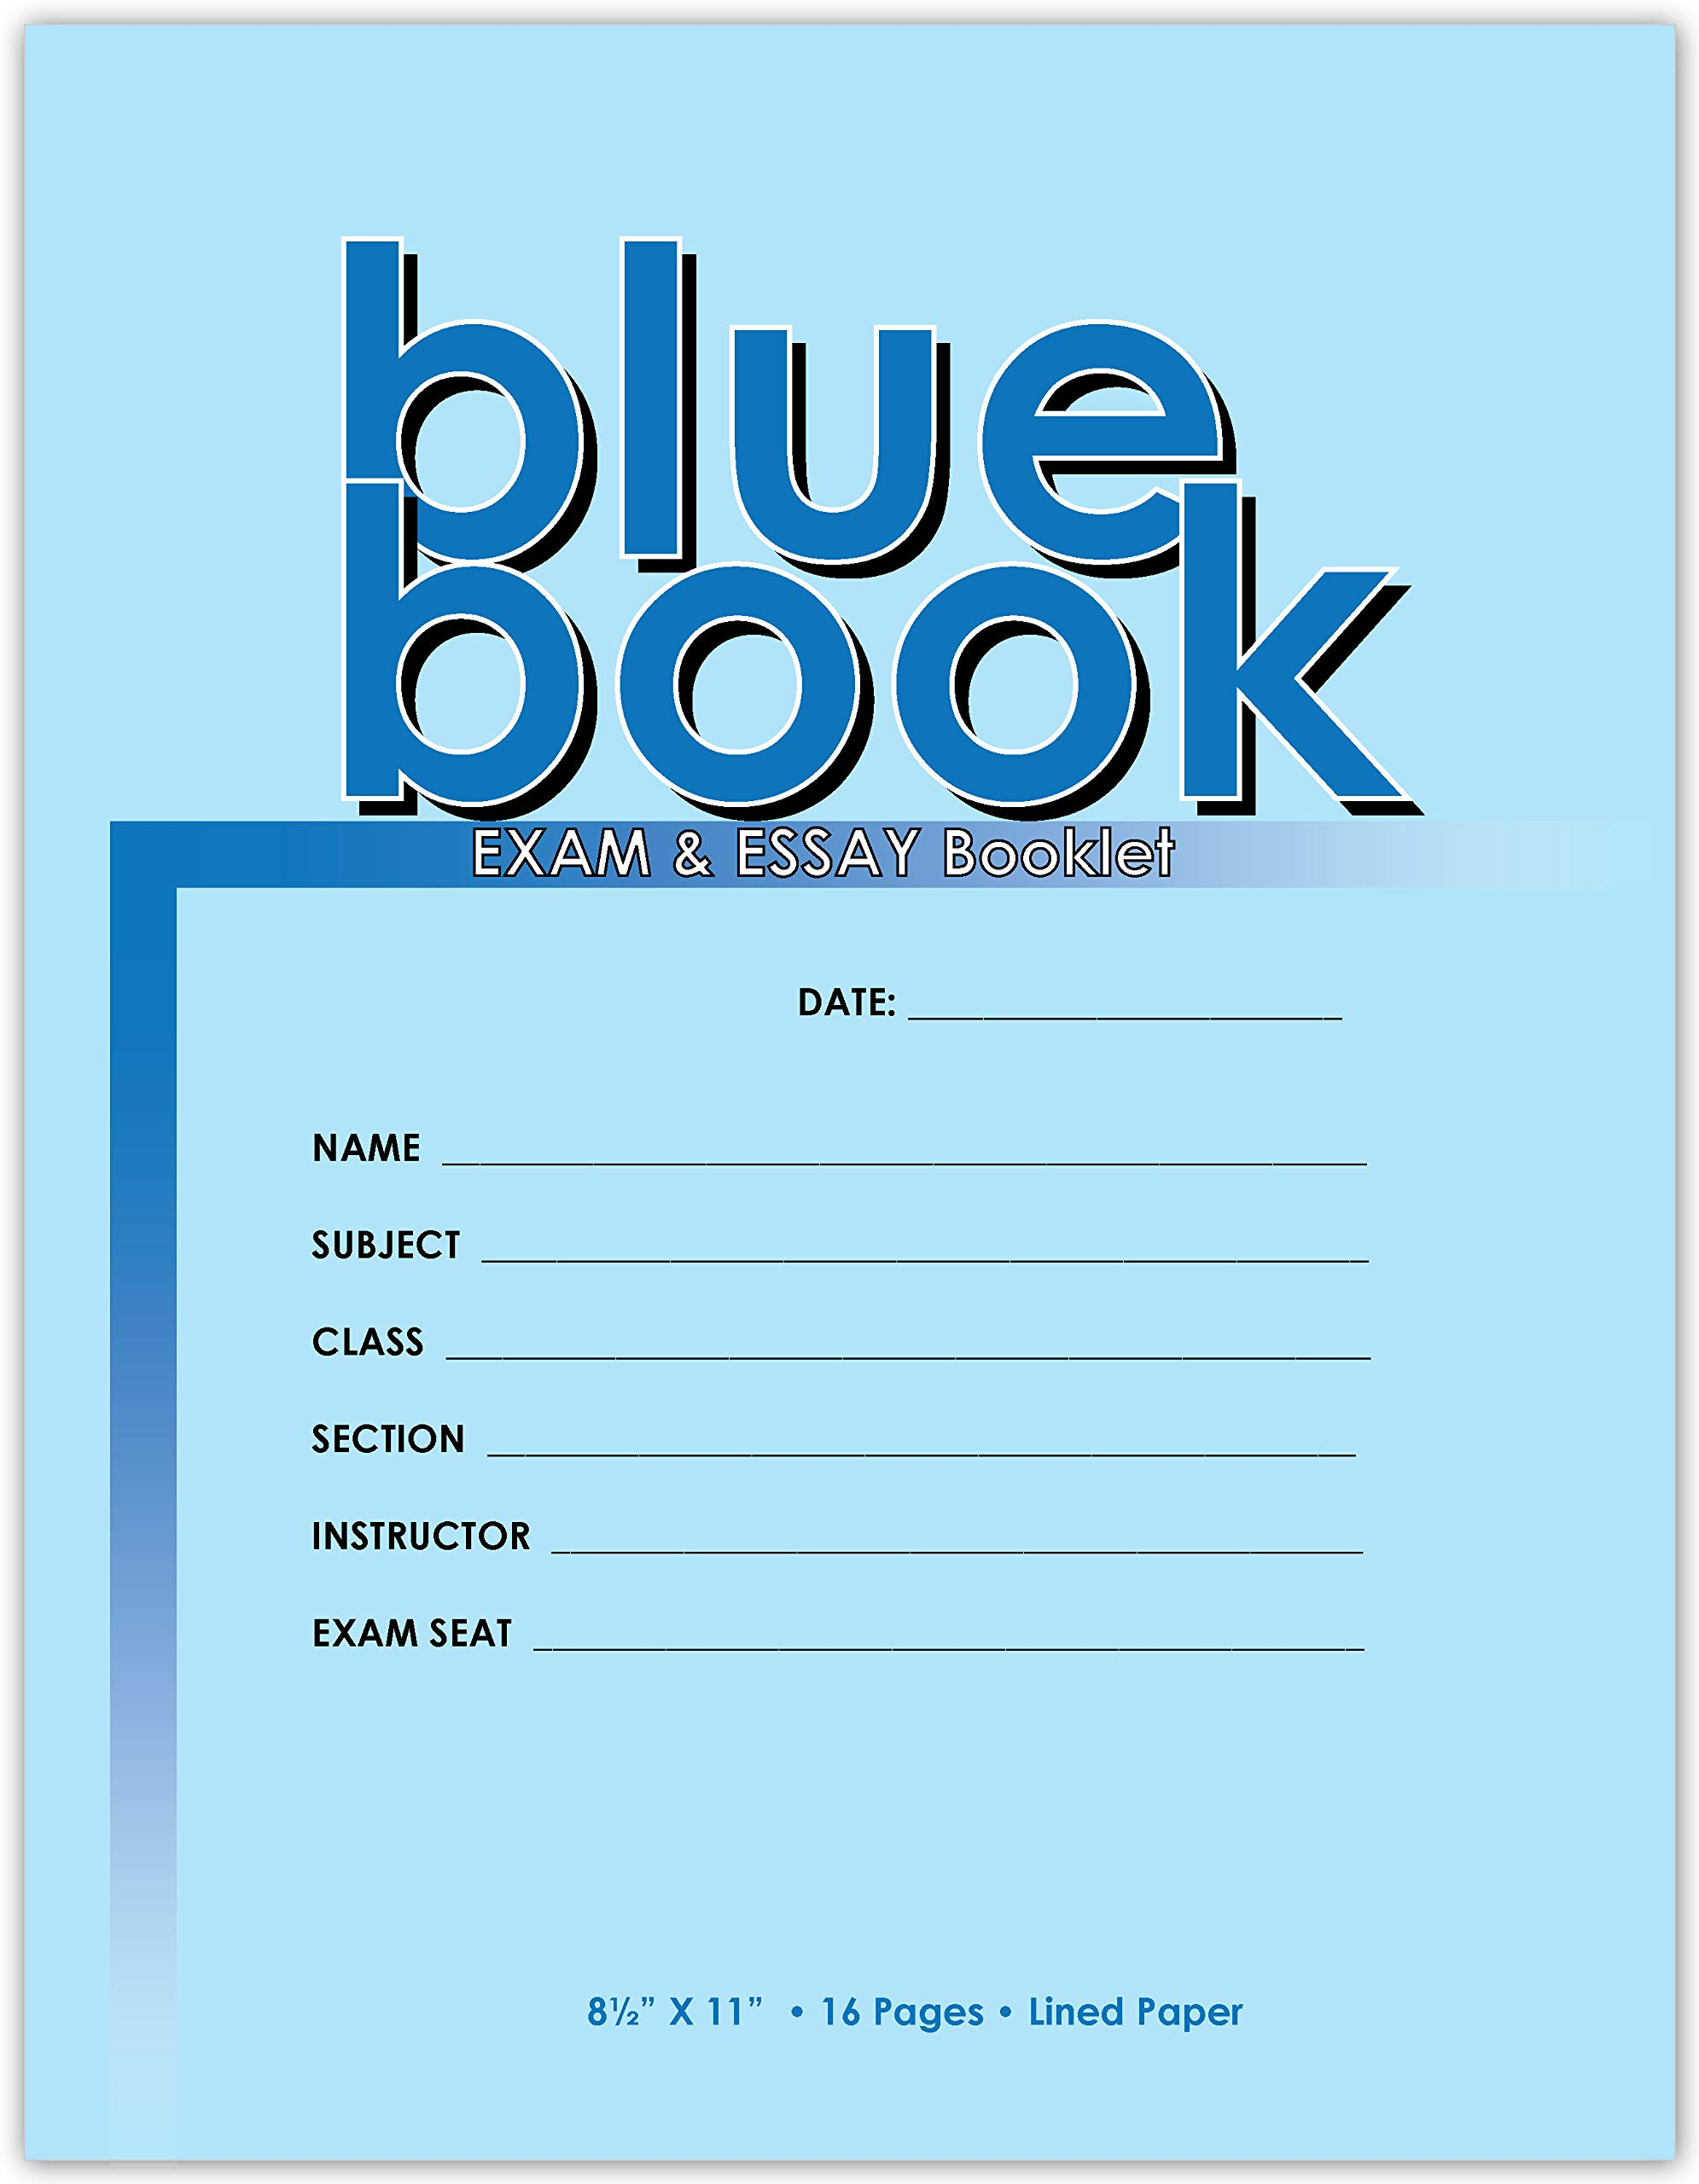 Exam Blue Book/Blue Exam Book/Blue Test Book (Ruled Format - 8.5'' x 11'' - 16) Saddle Stitched (Exam Book) 50 Booklets by Buybazinga